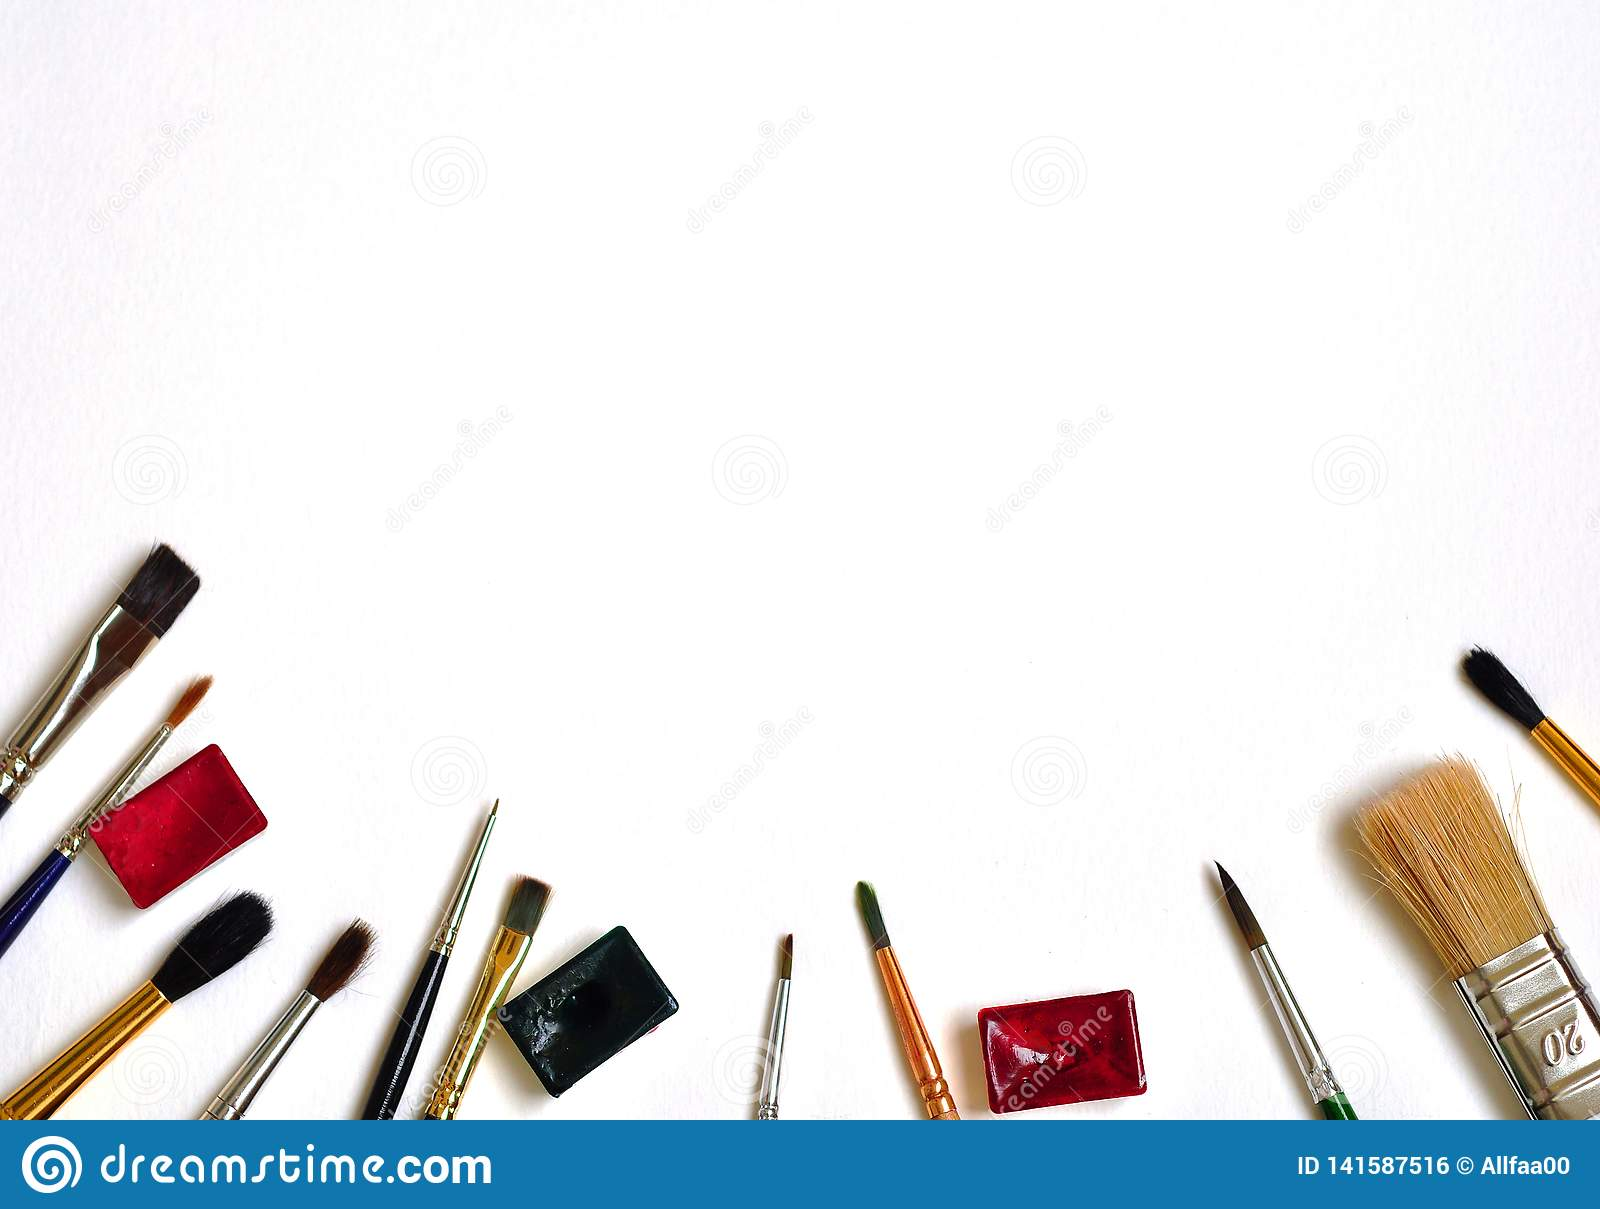 Art brushes and paints on a white background. Flat lay, top view, copy space